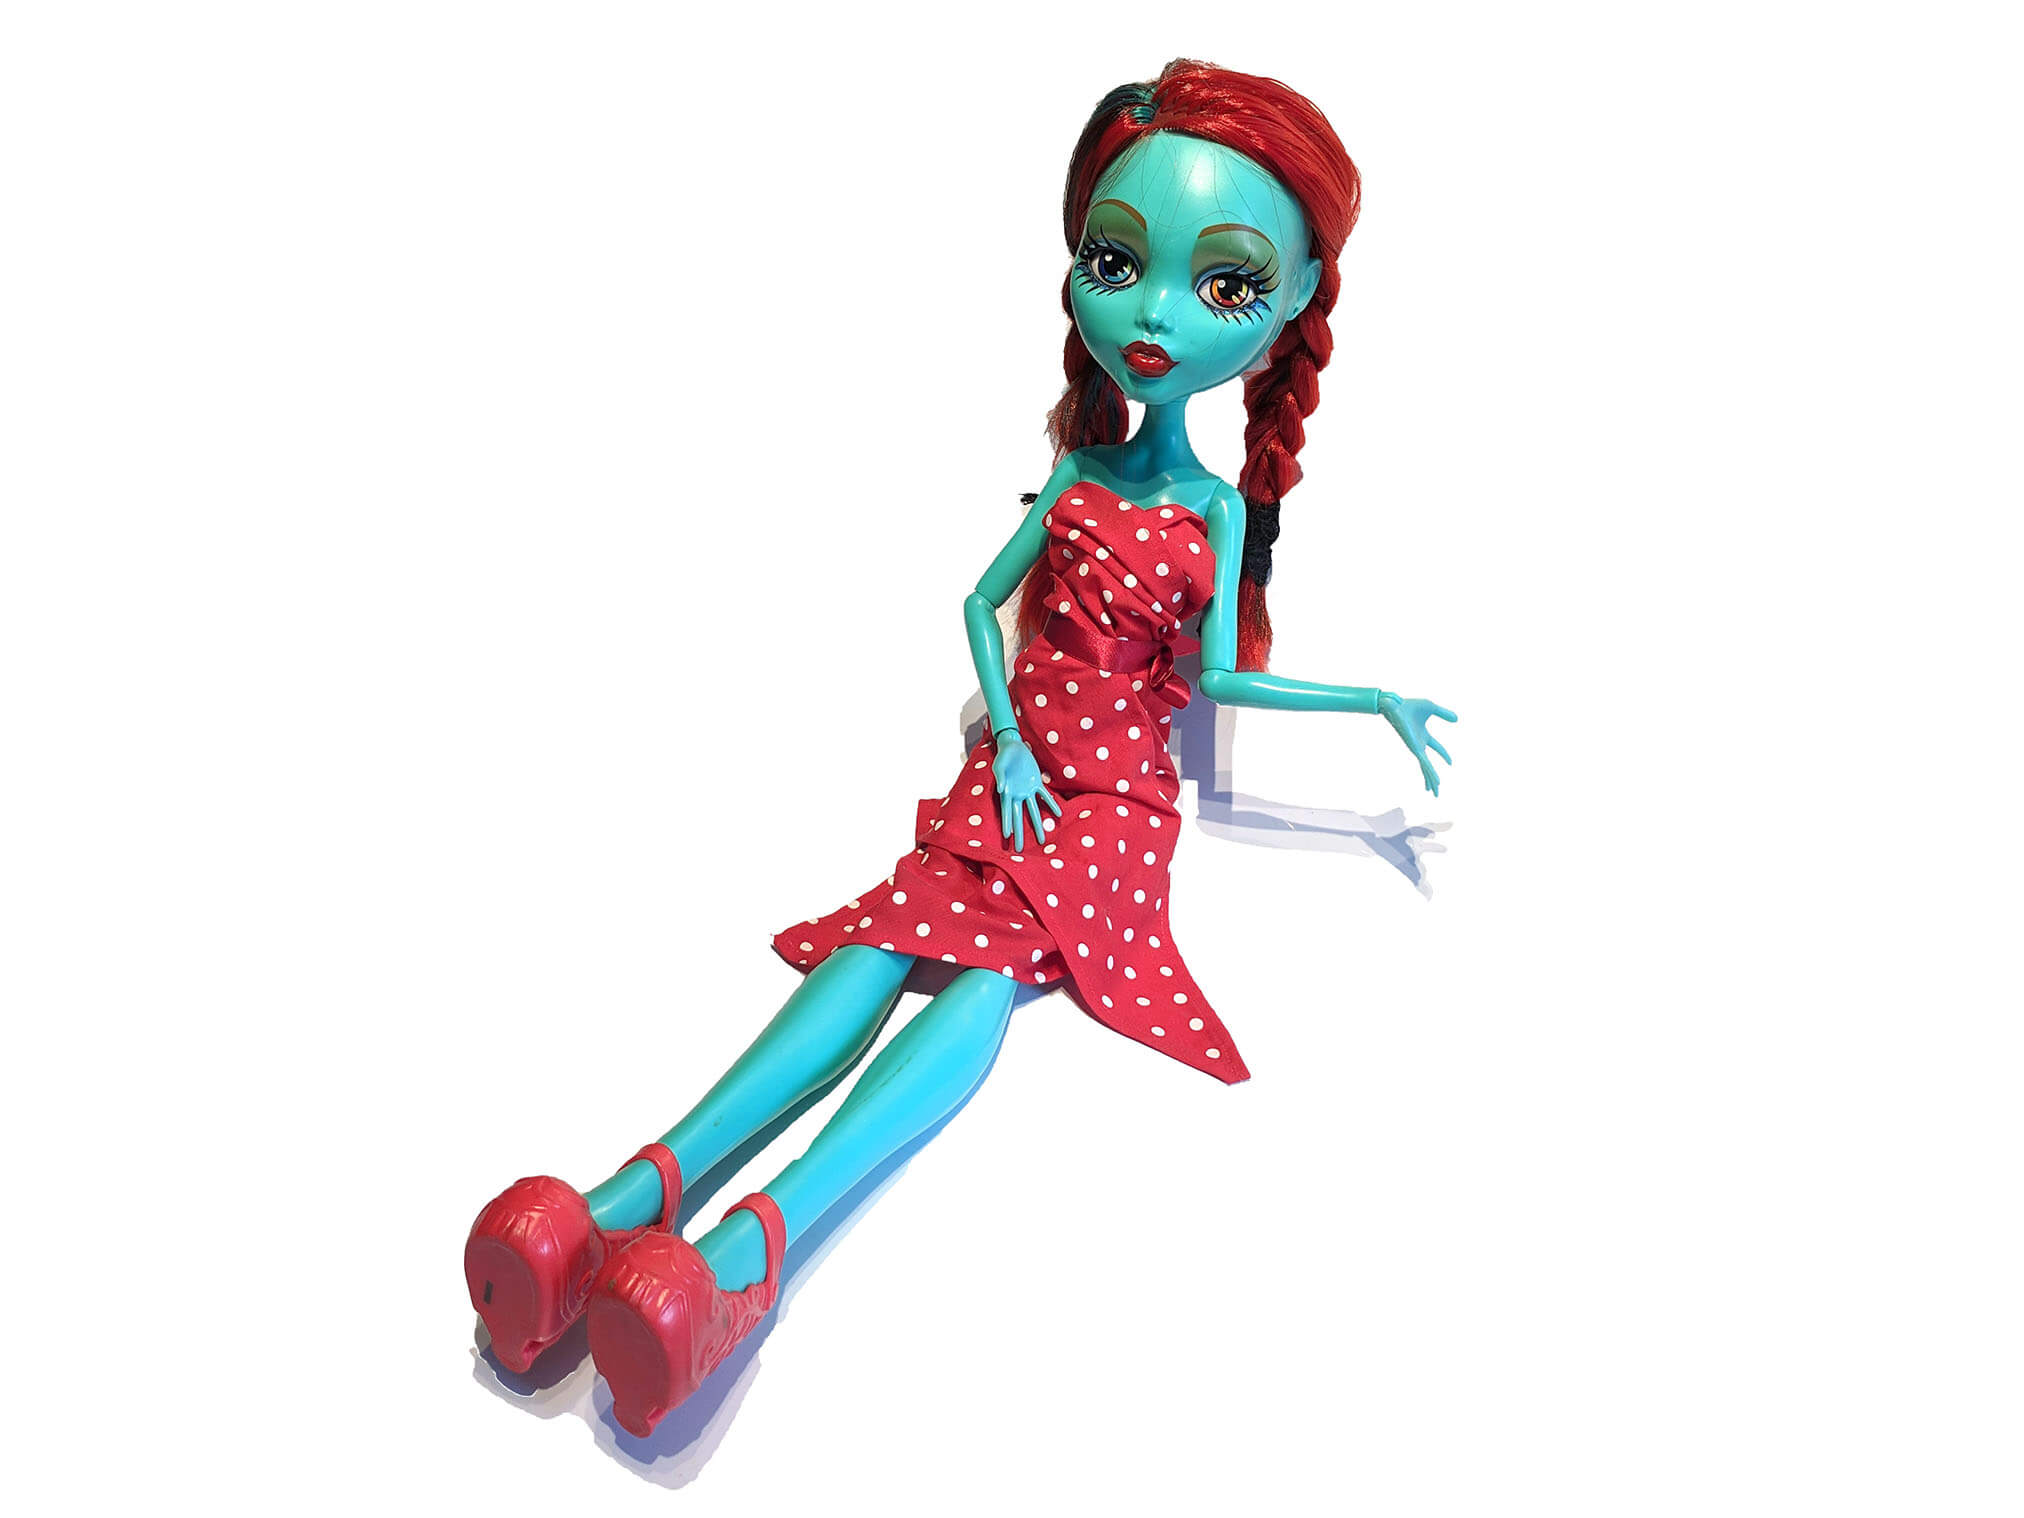 MonsterHigh-Doll (1).jpg